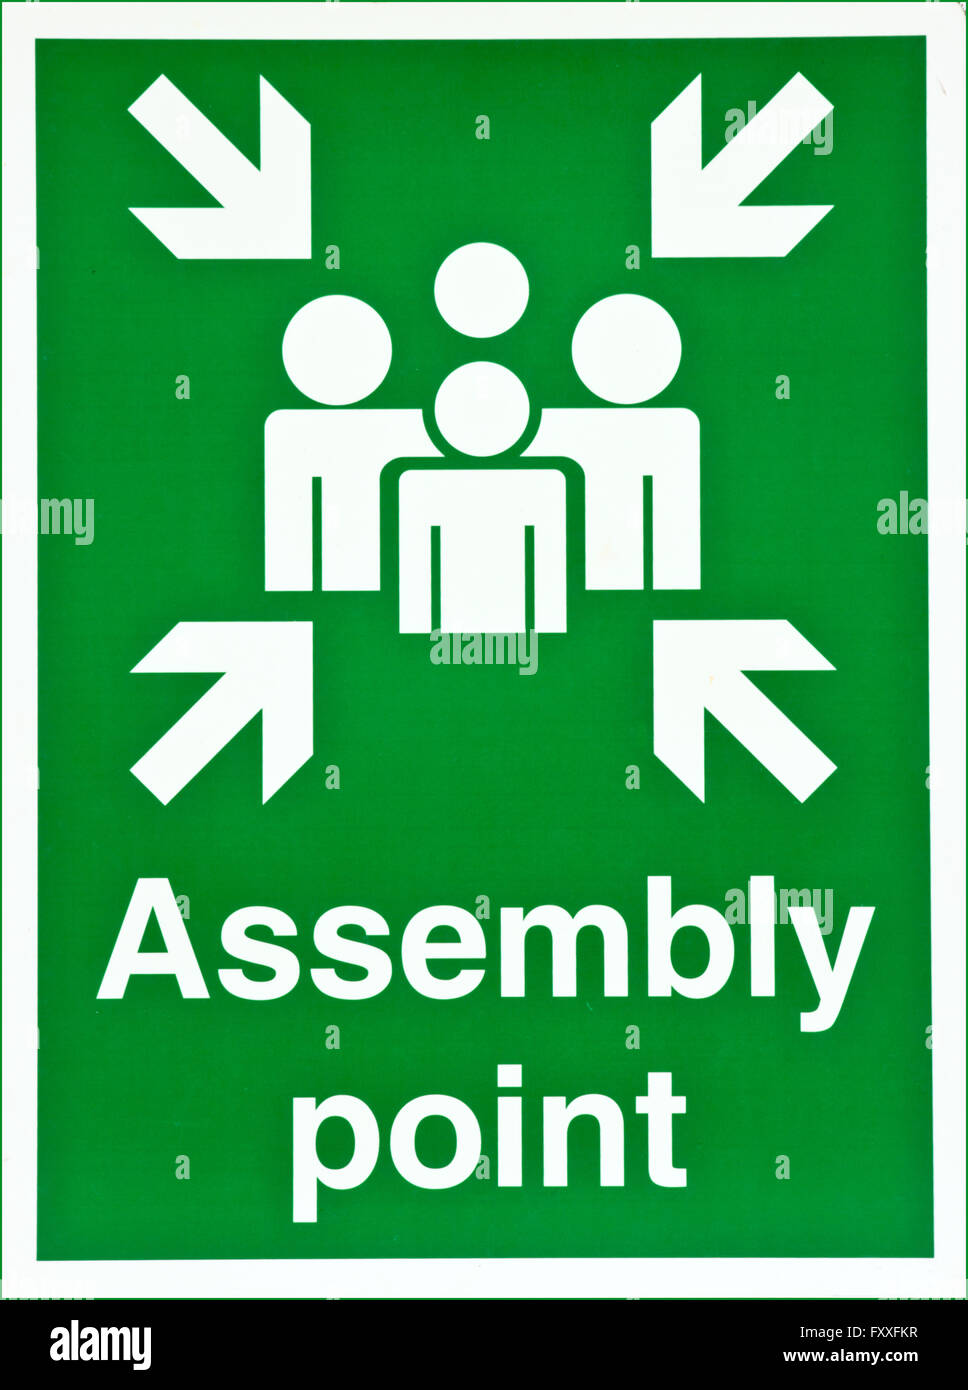 Green fire assembly point sign - Stock Image